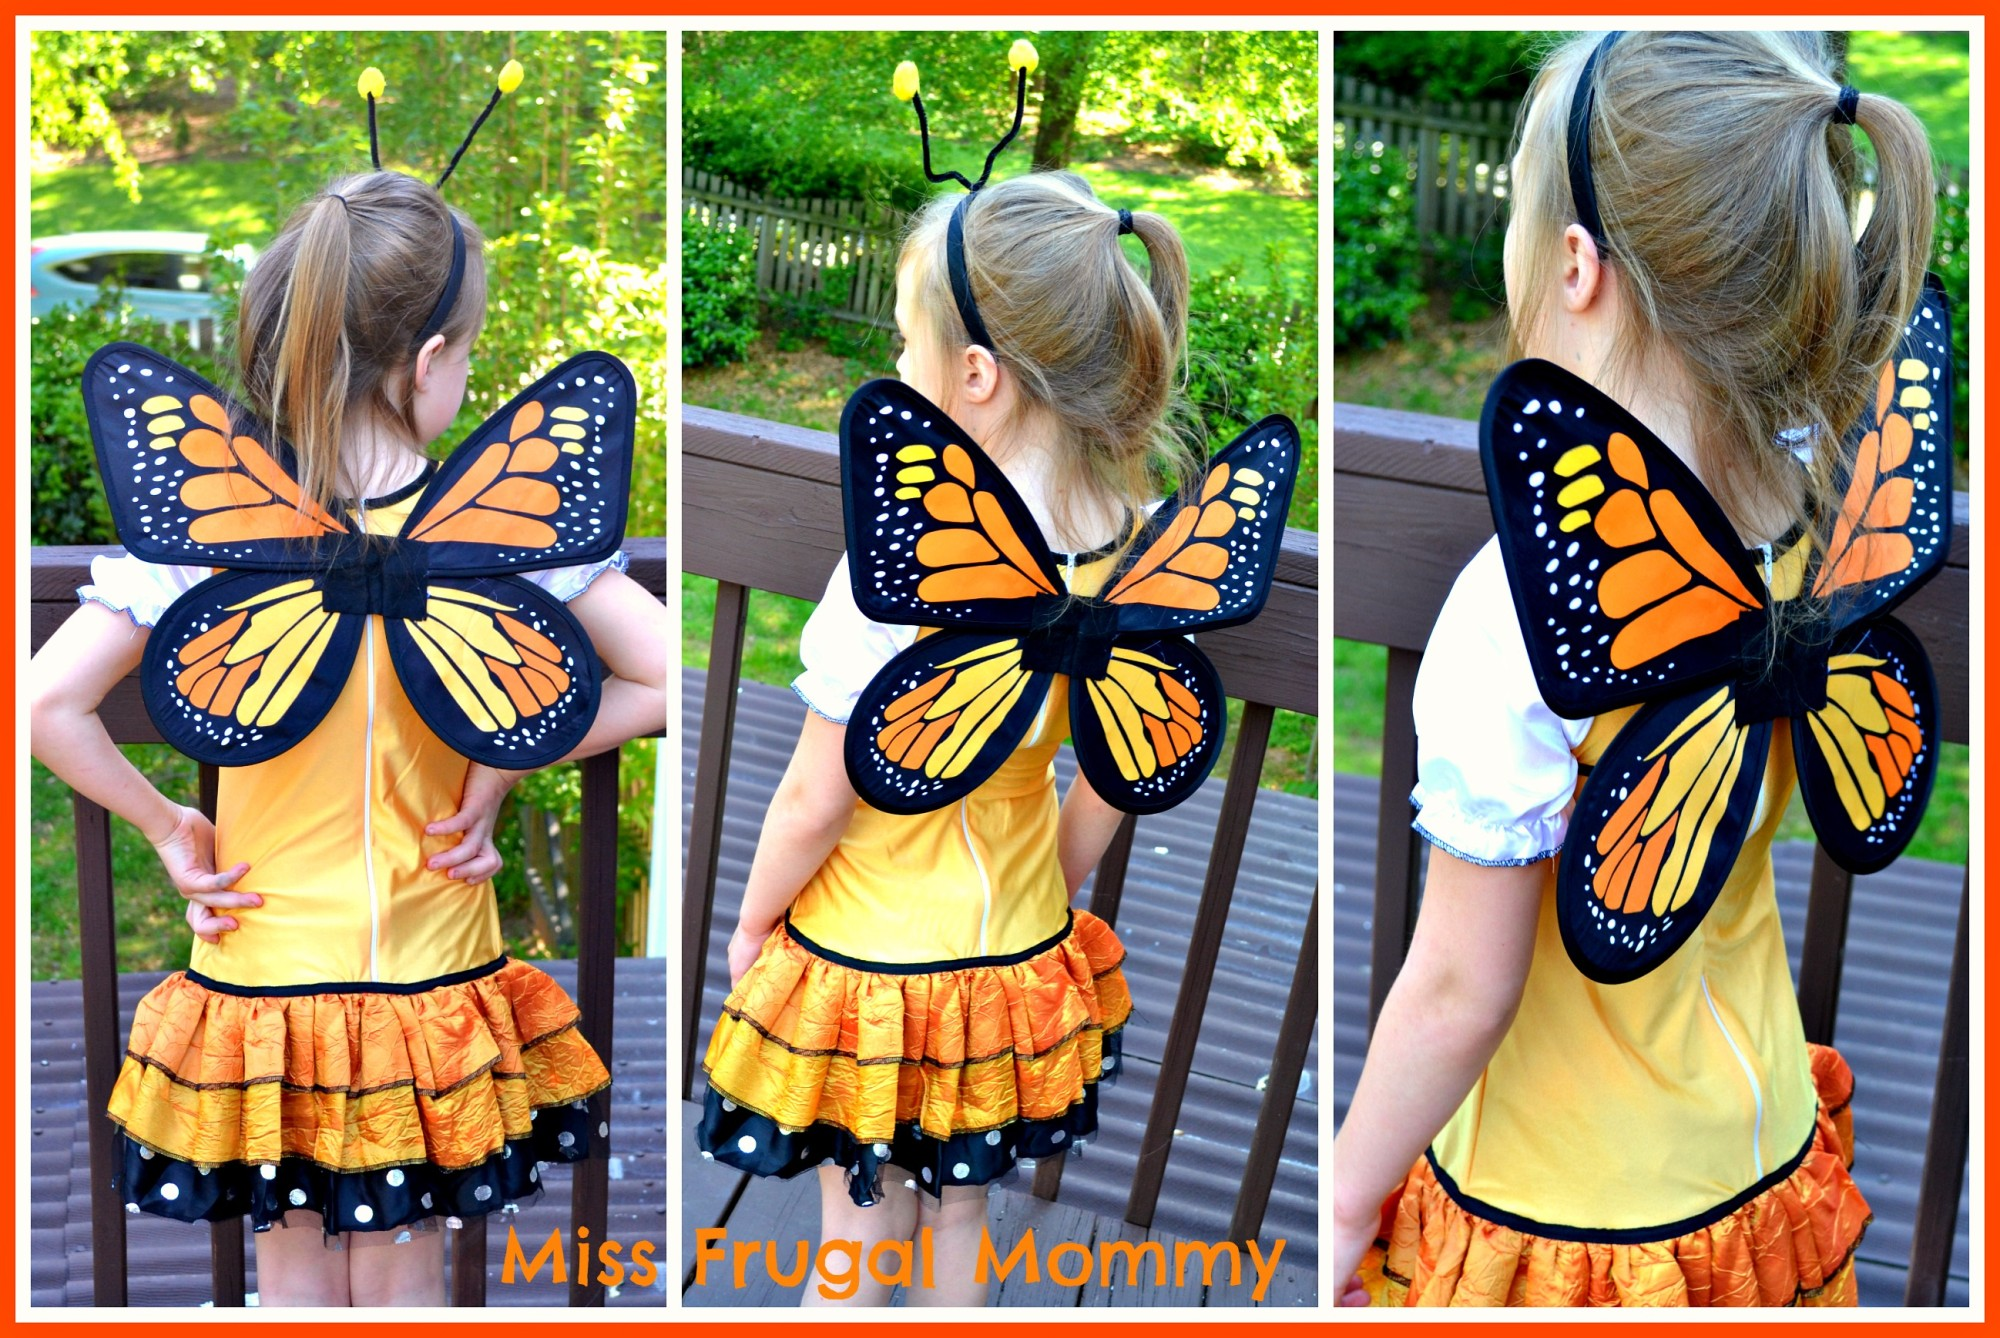 Costume Discounters: Butterfly Princess Costume Review